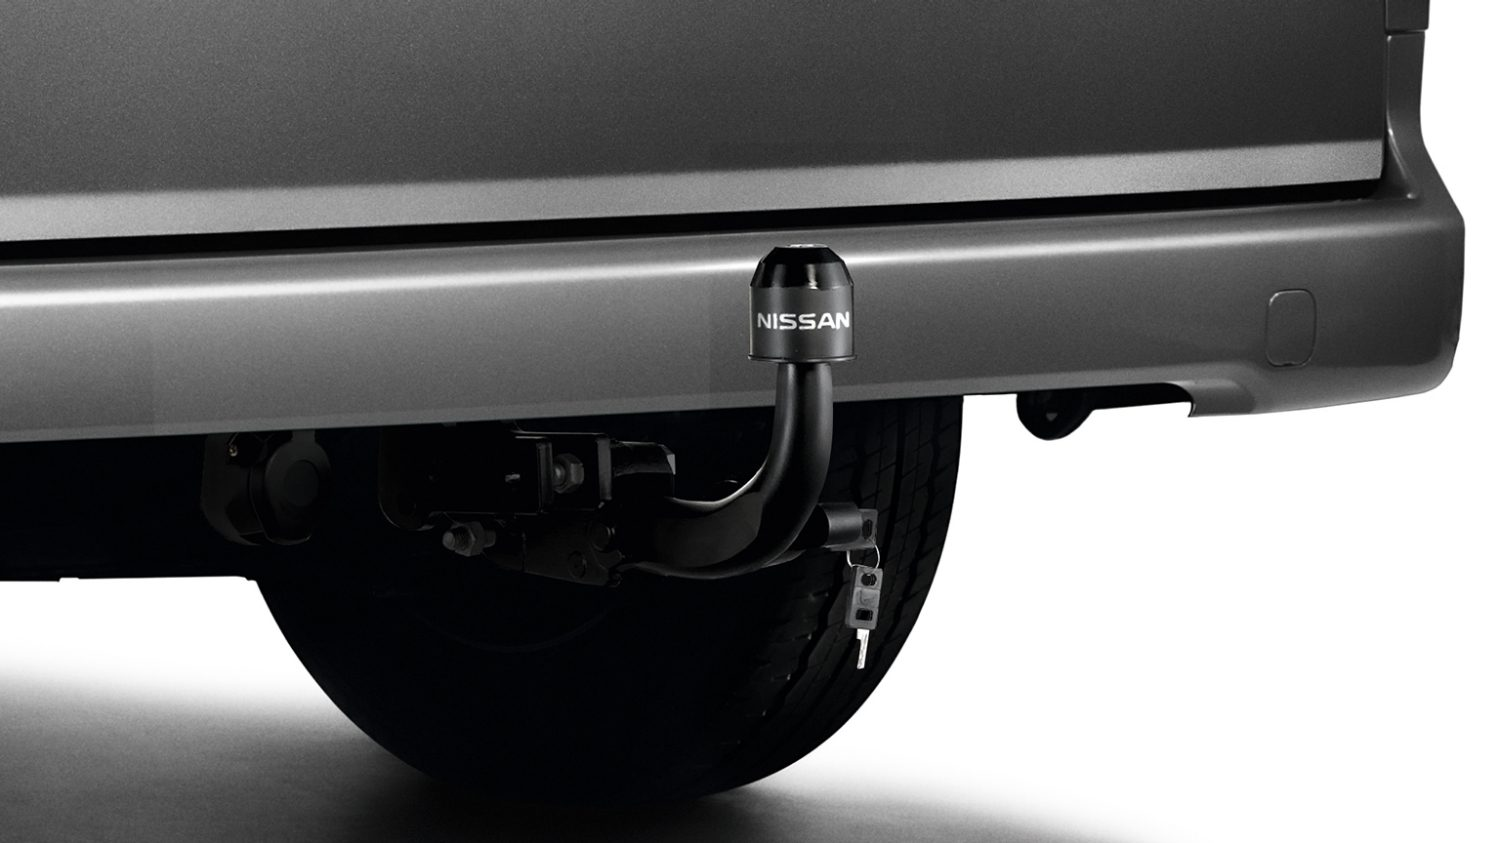 Nissan Evalia - Transportation - Removable towbar